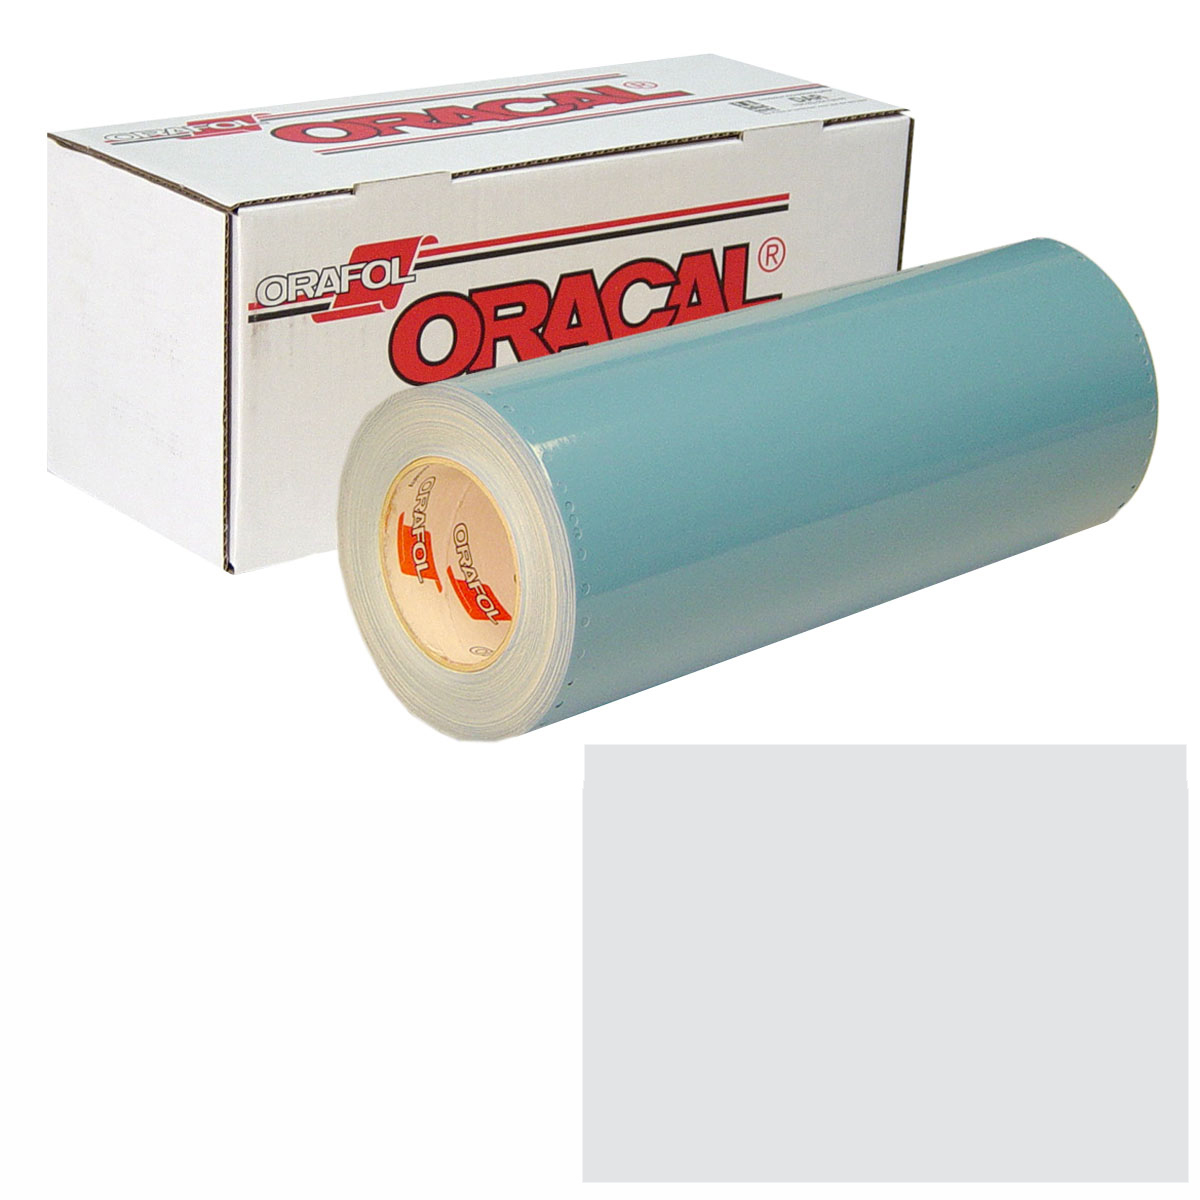 ORACAL 751 30in X 10yd 072 Light Grey